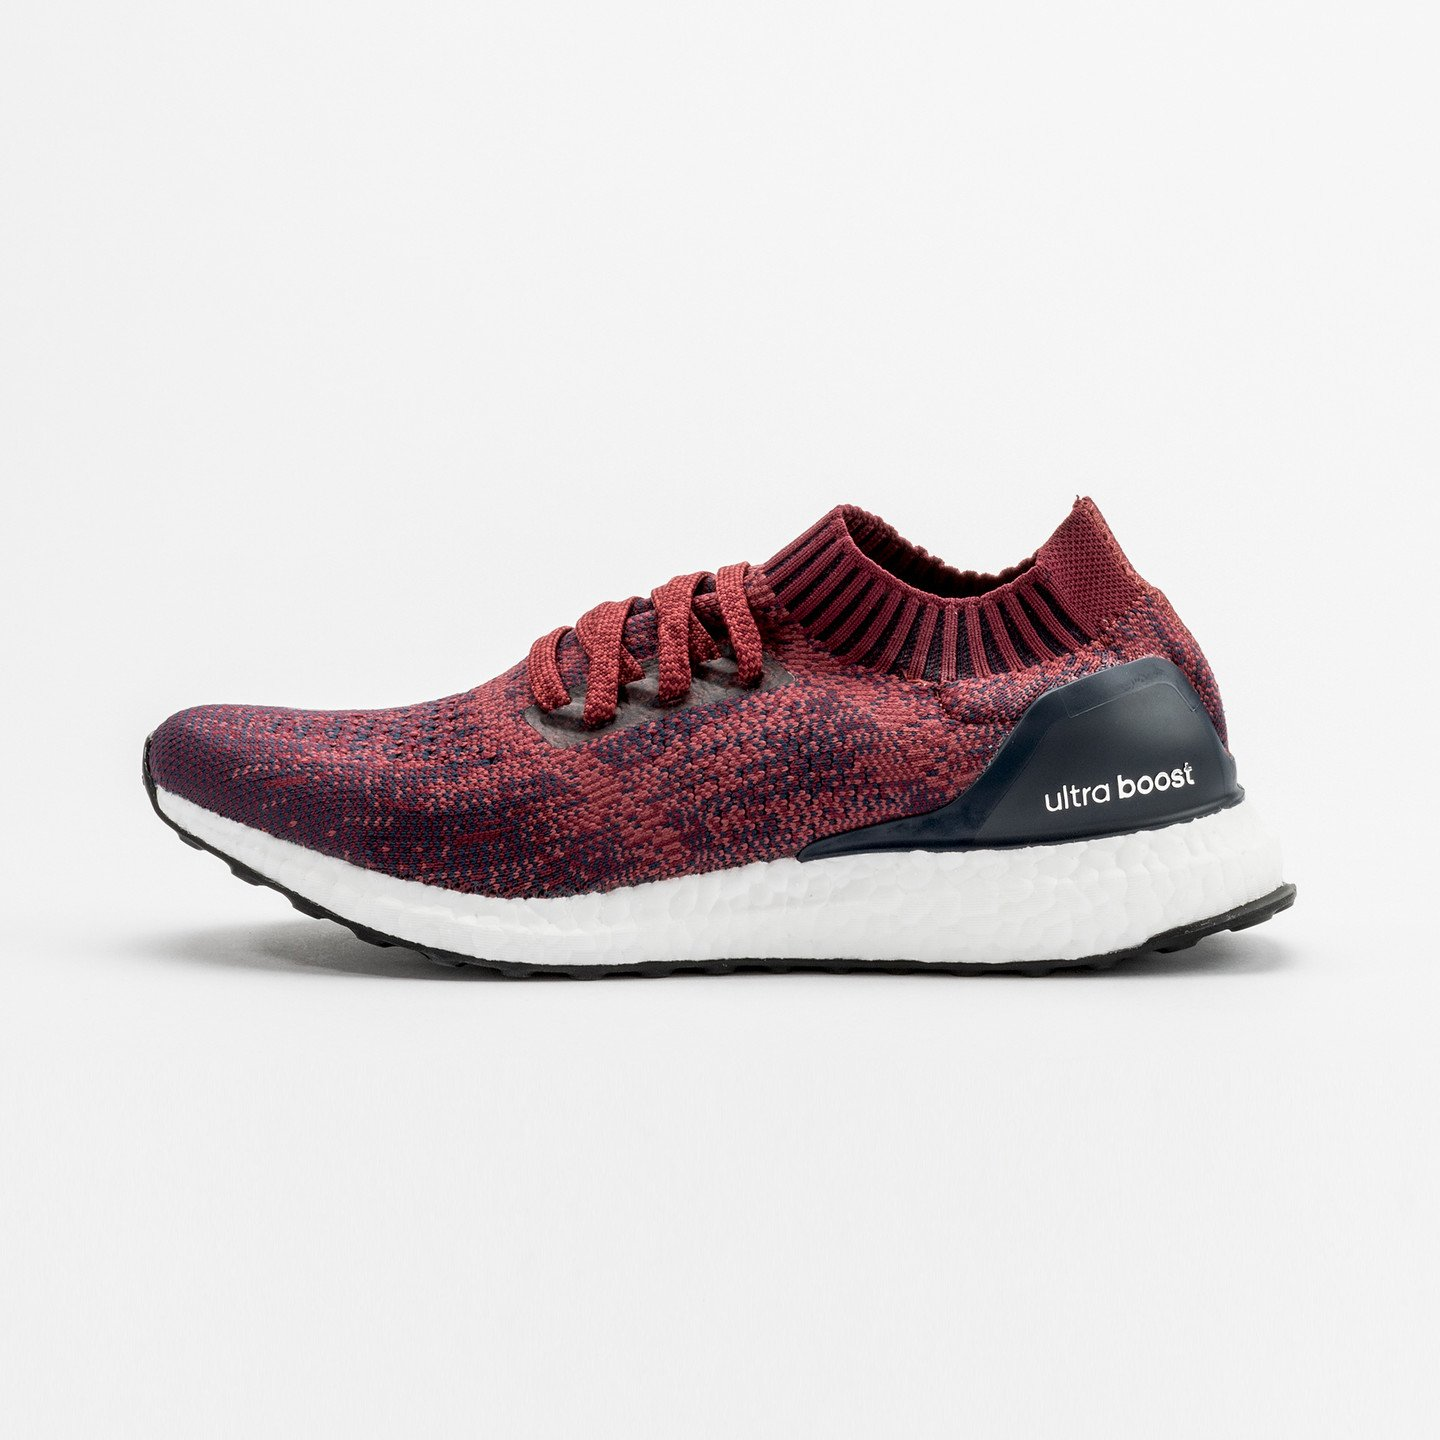 Adidas Ultra Boost Uncaged 'Burgundy' Mystery Red / Coll. Burgundy / Coll. Navy BA9617-40.66